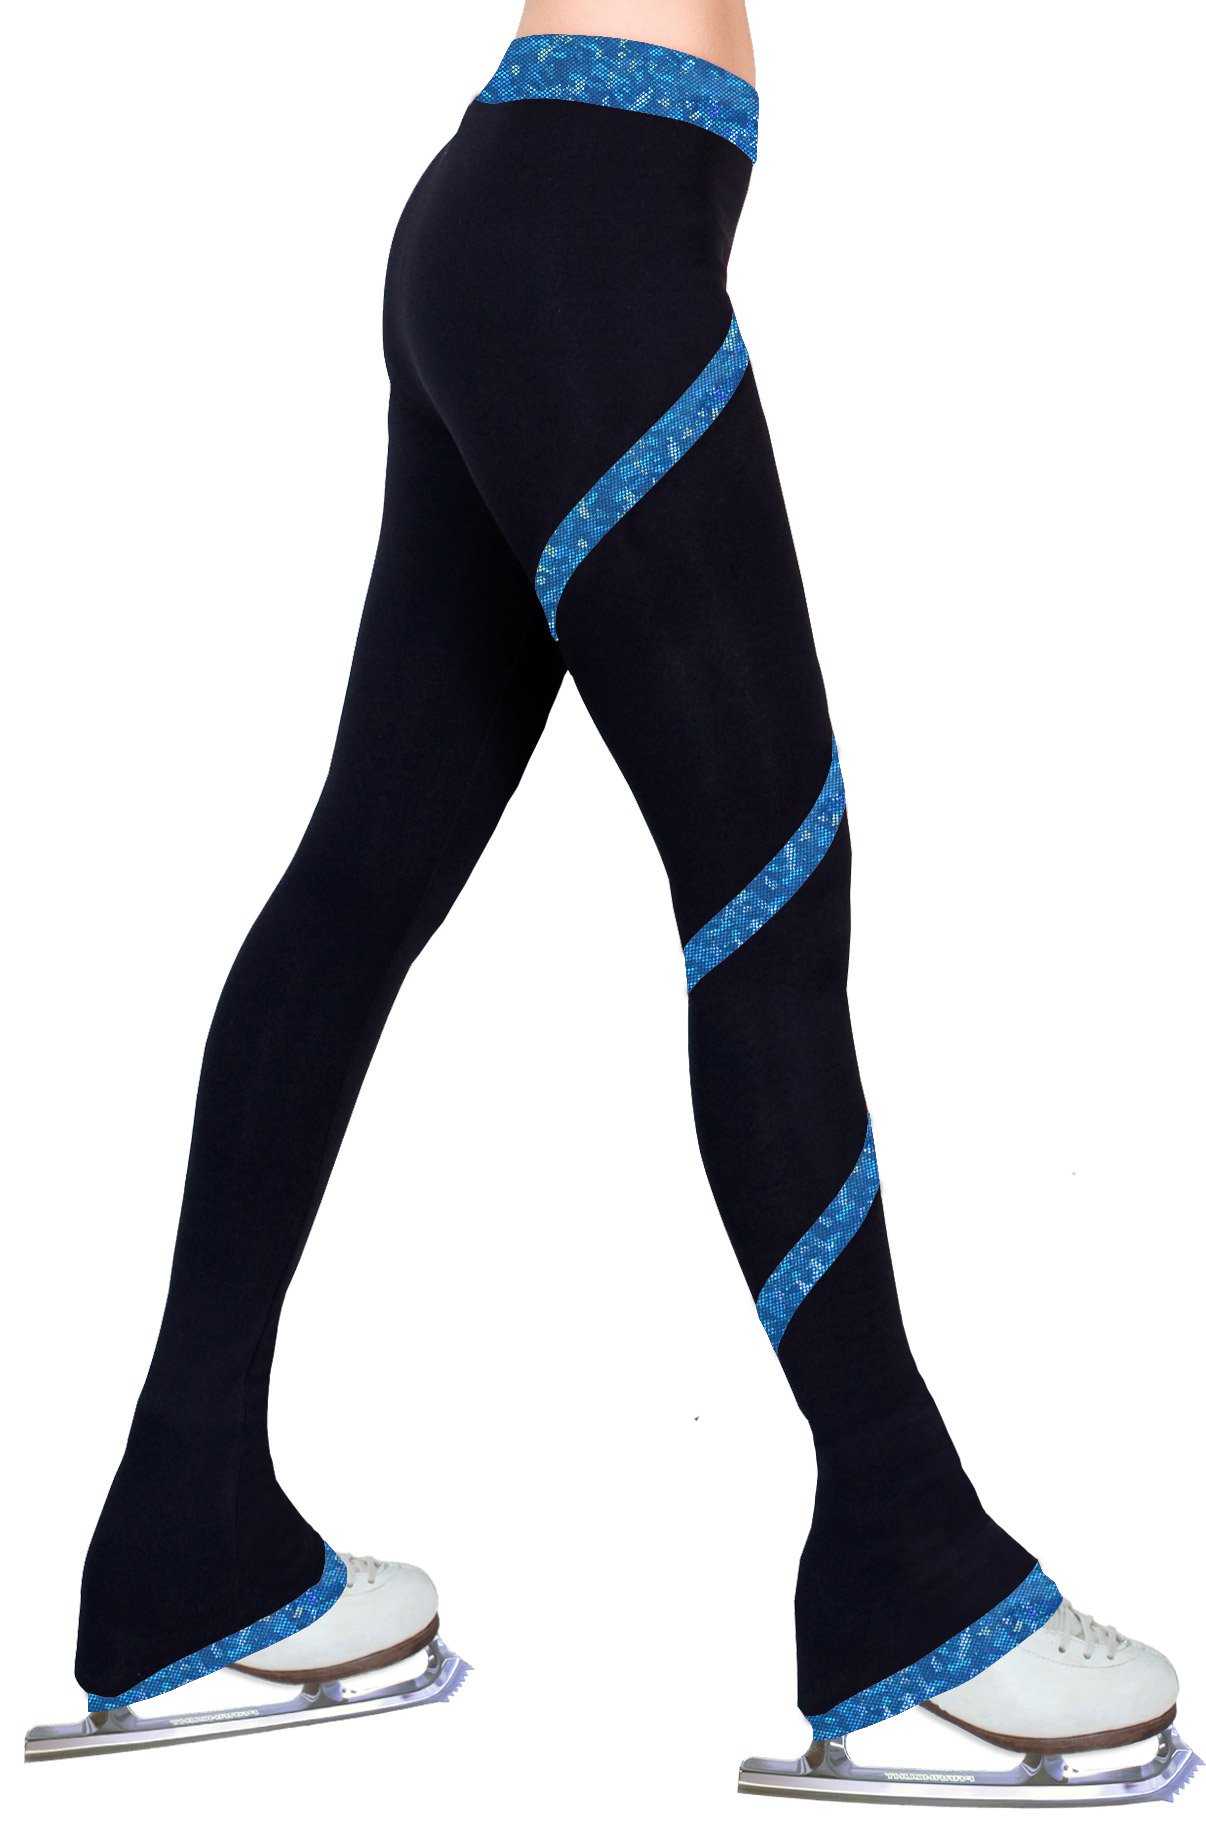 ny2 Sportswear Figure Skating Spiral Polartec Polar Fleece Pants (Hologram Foil Blue, Child Extra Small) by ny2 Sportswear